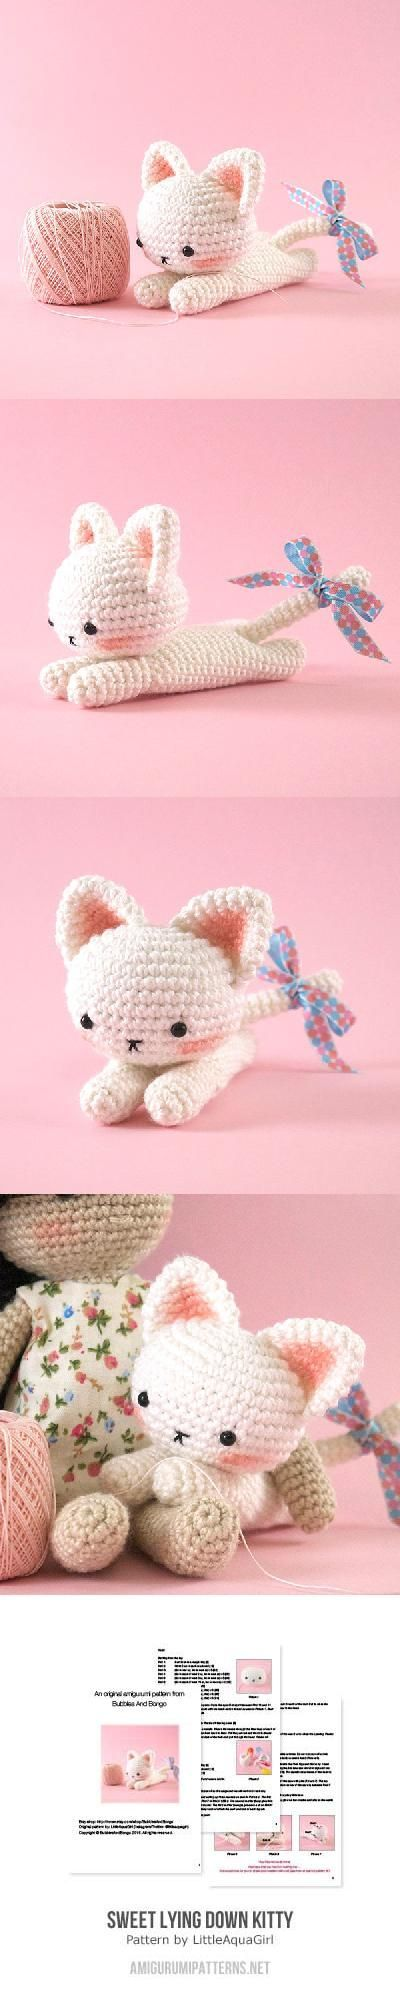 Sweet Lying Down Kitty Amigurumi Pattern